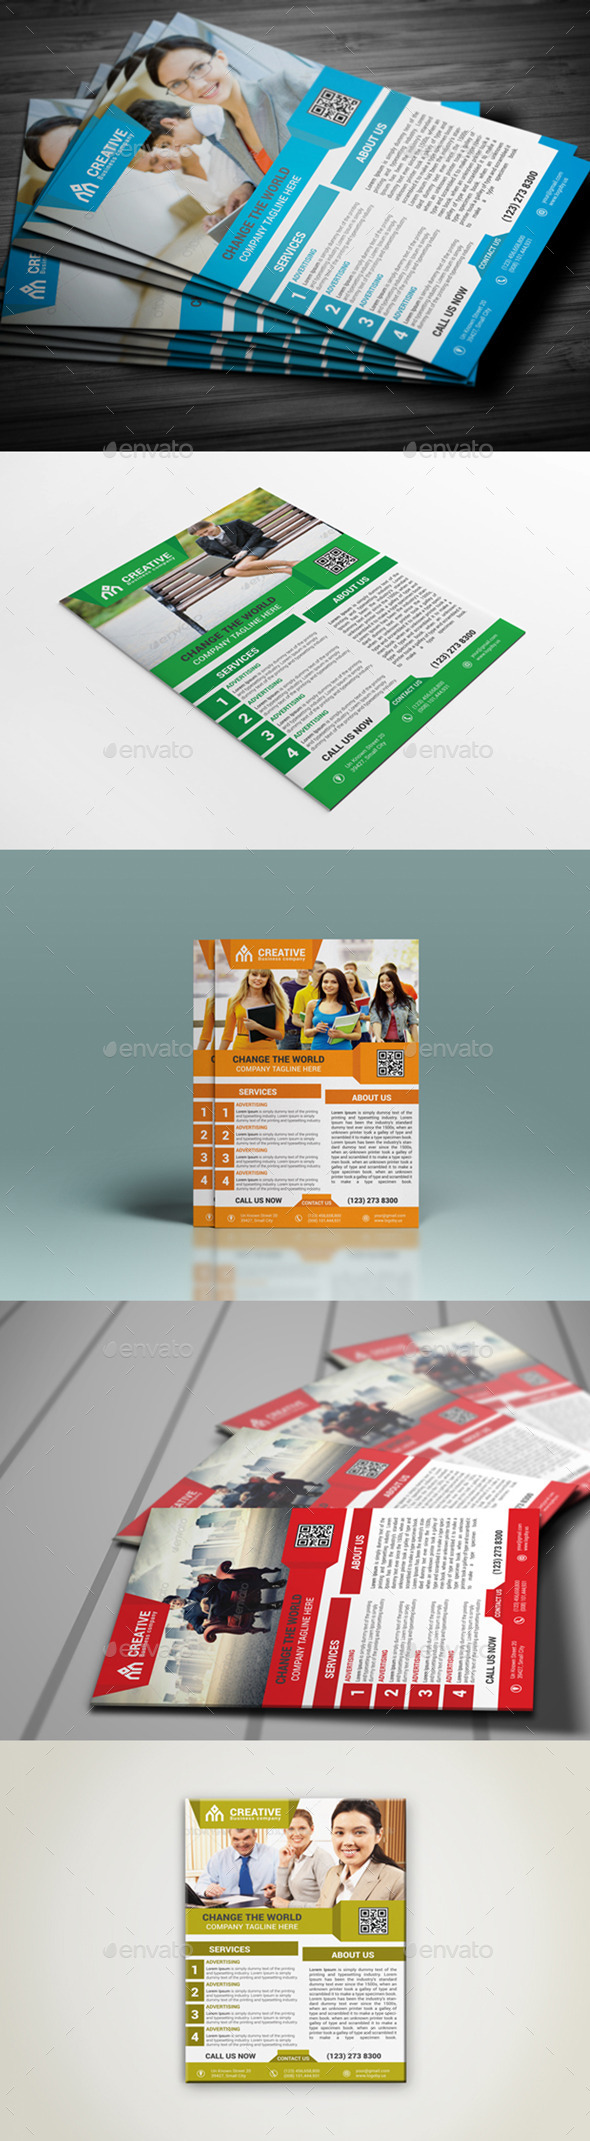 Creative Corporate Flyer Template - Flyers Print Templates